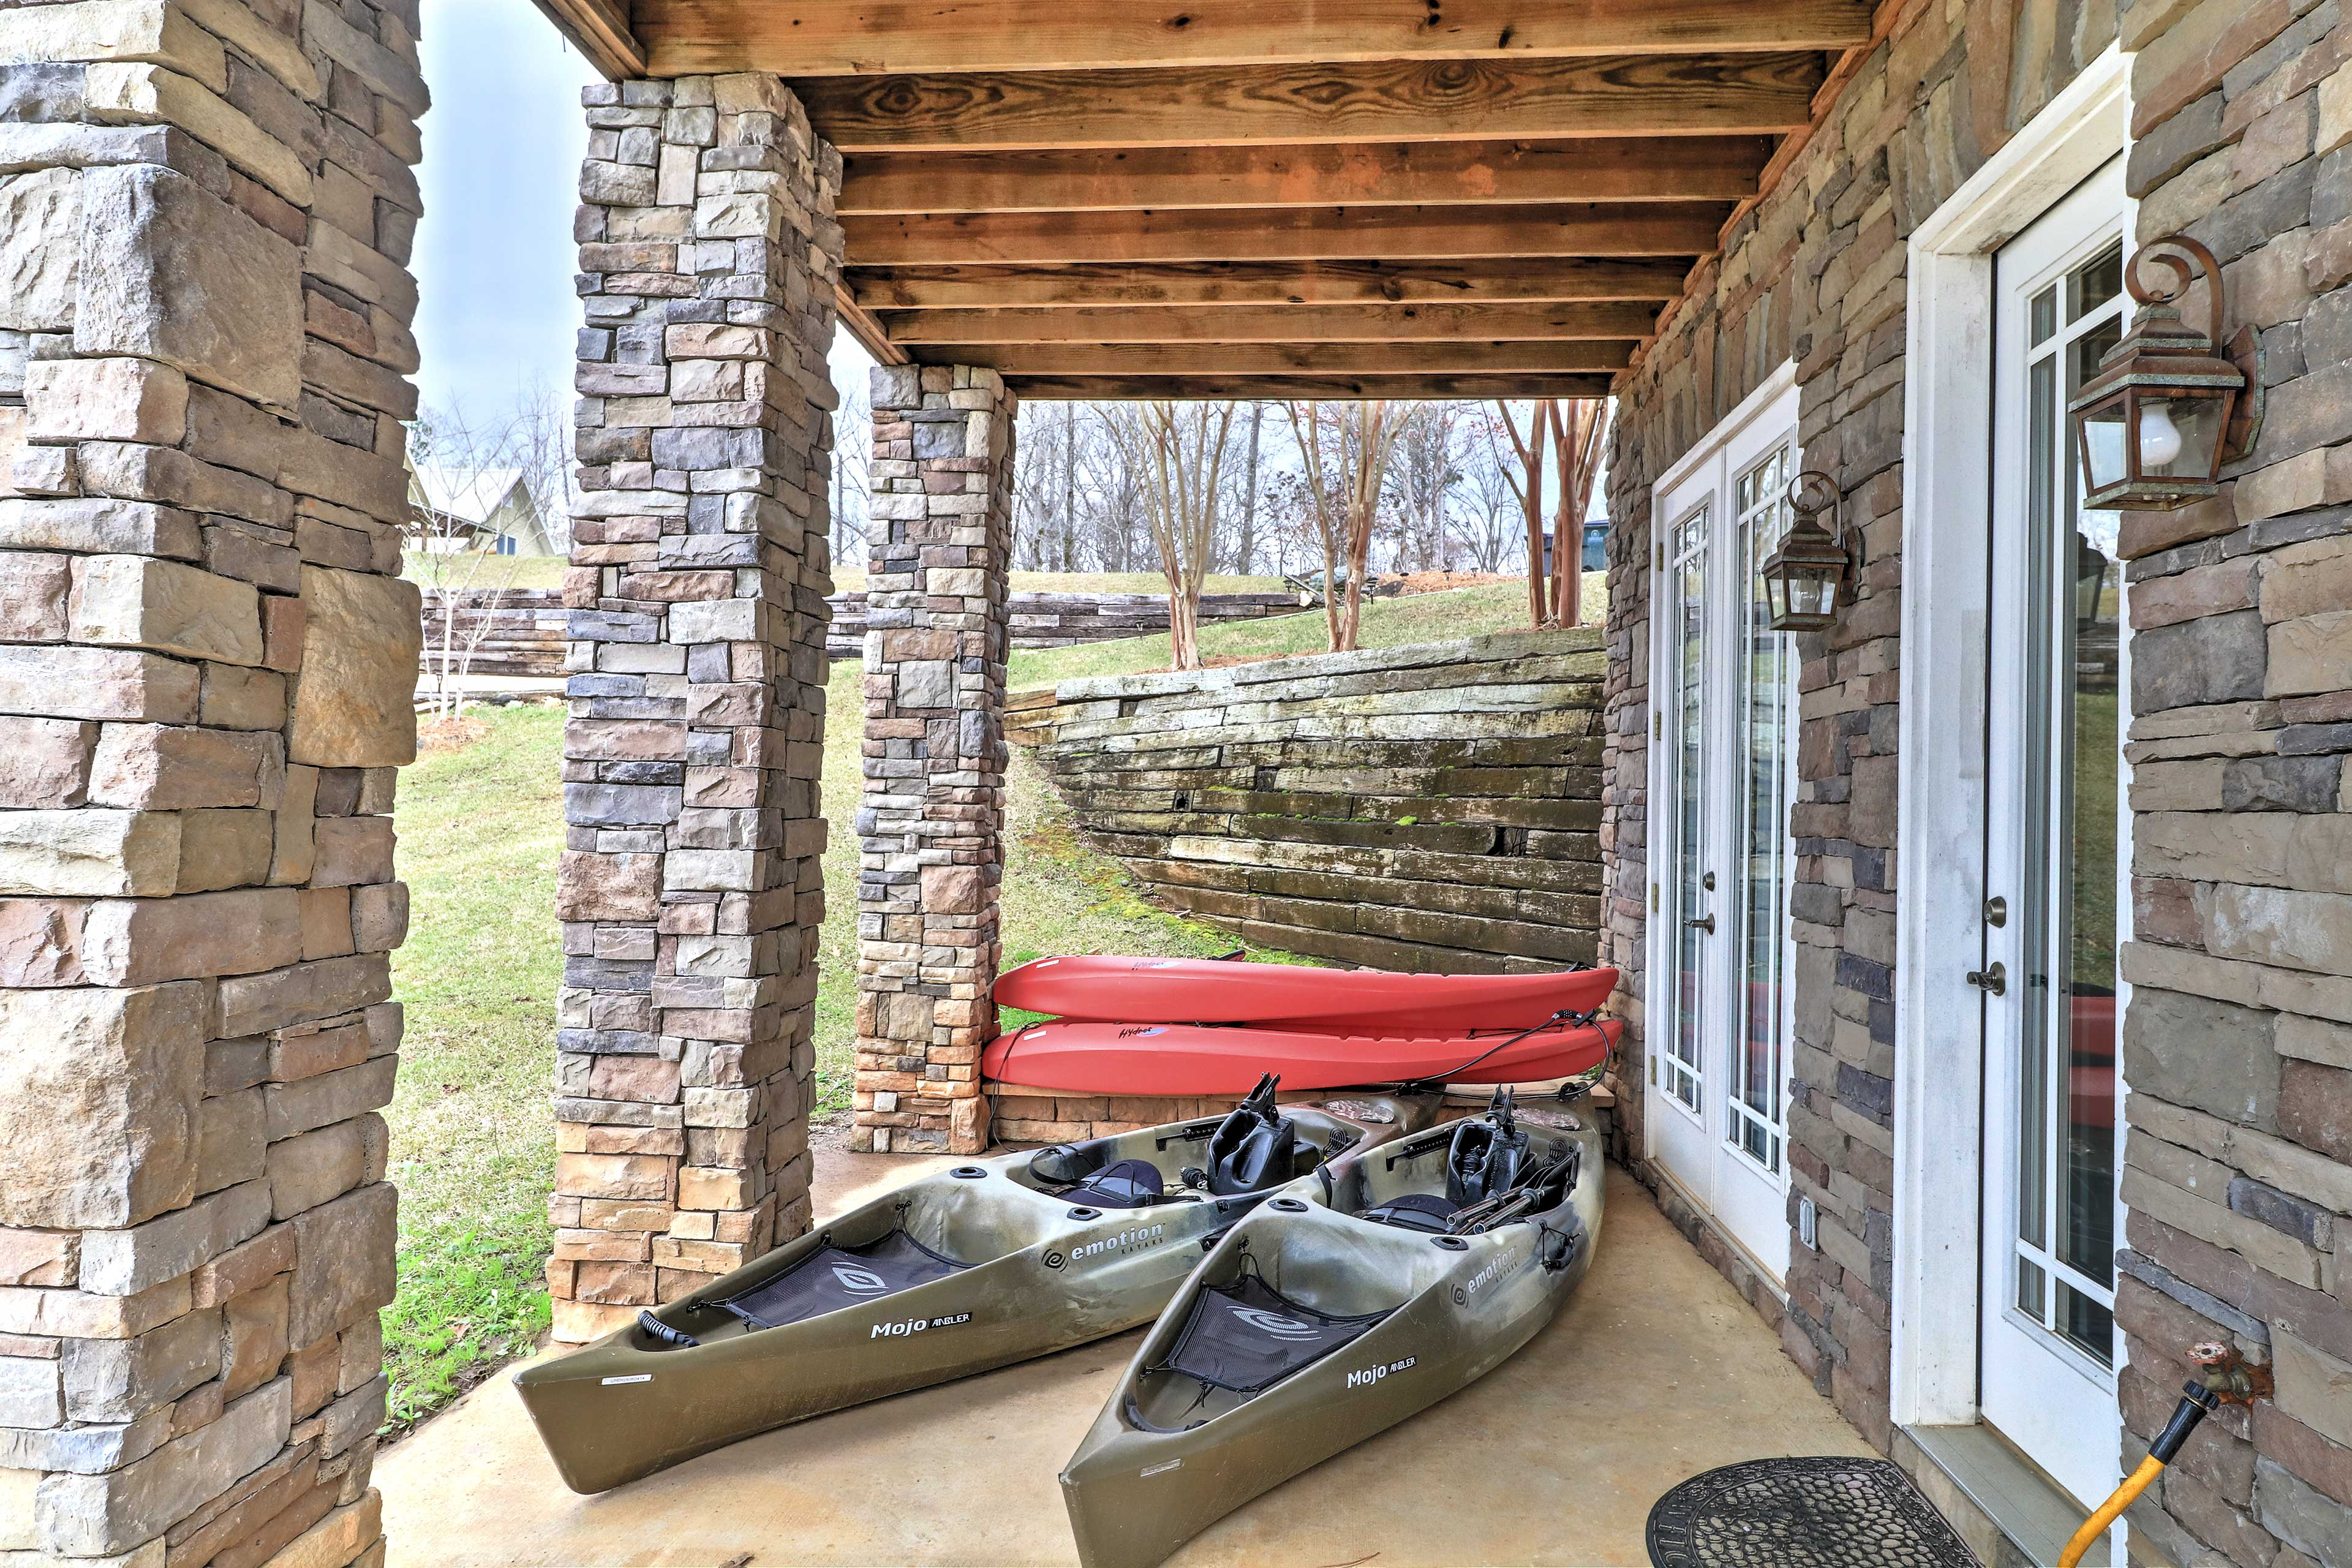 Explore Lake Martin on the 4 provided kayaks that guest are encouraged to use!